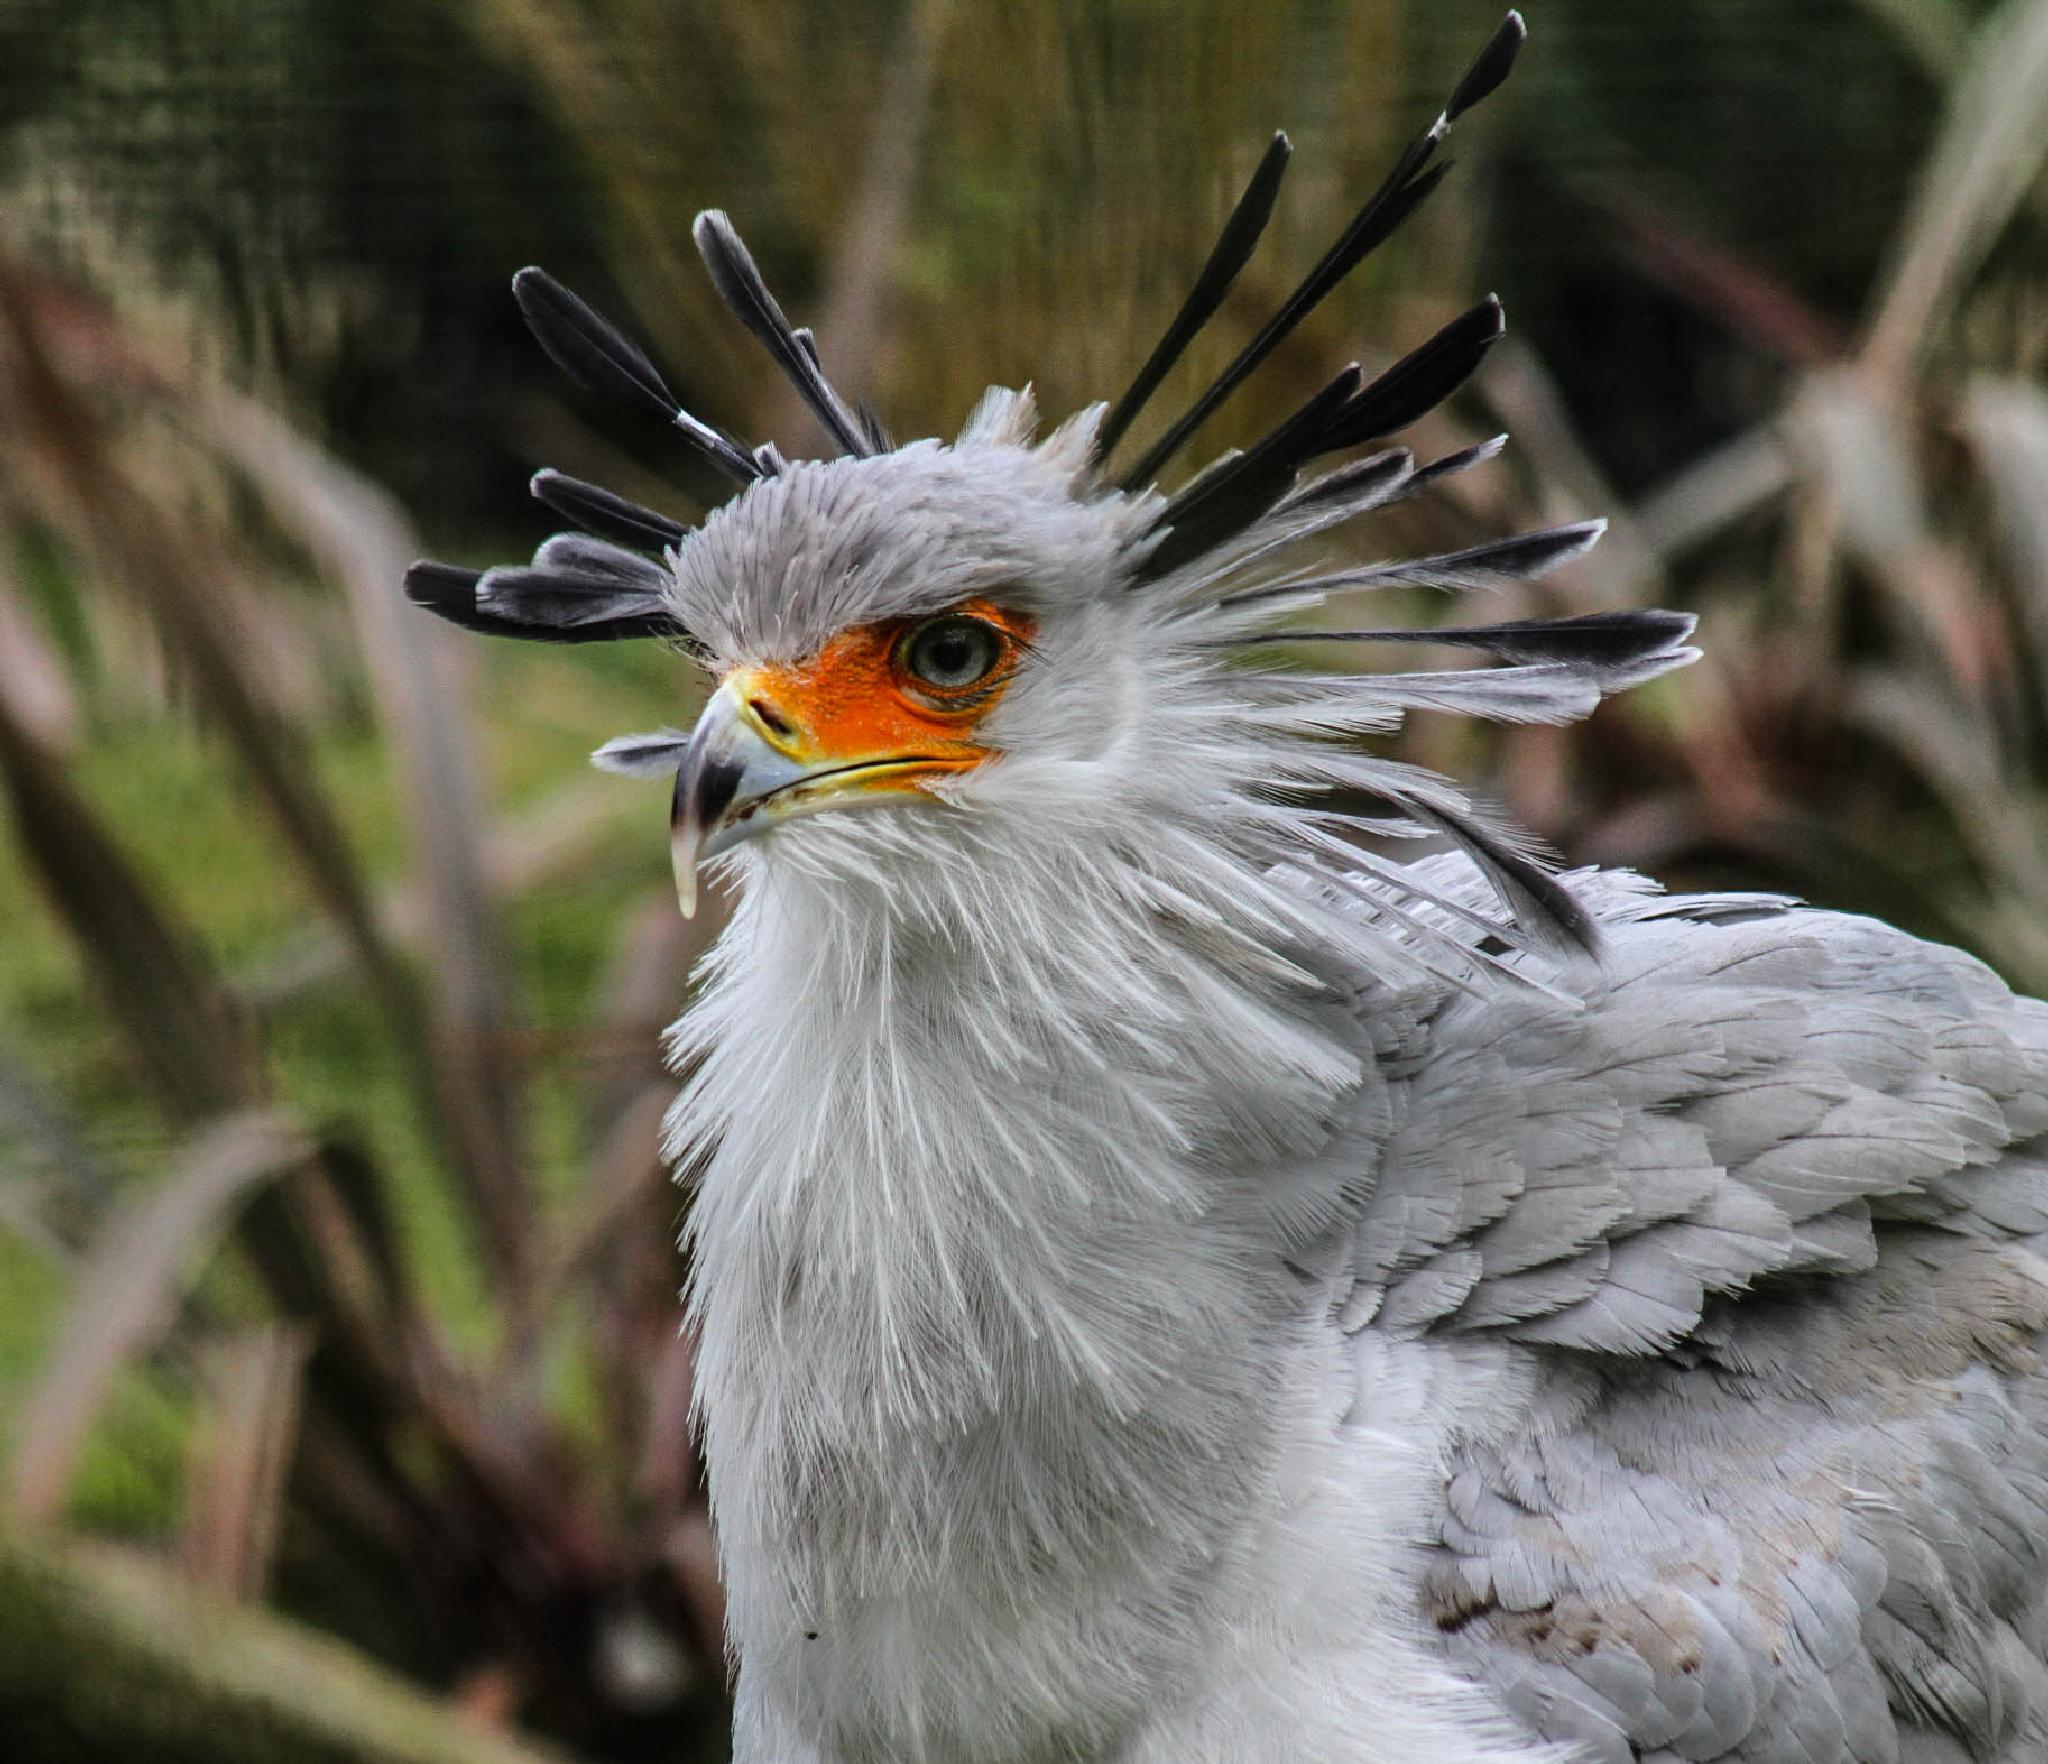 Secretary Bird by garry-chisholm1